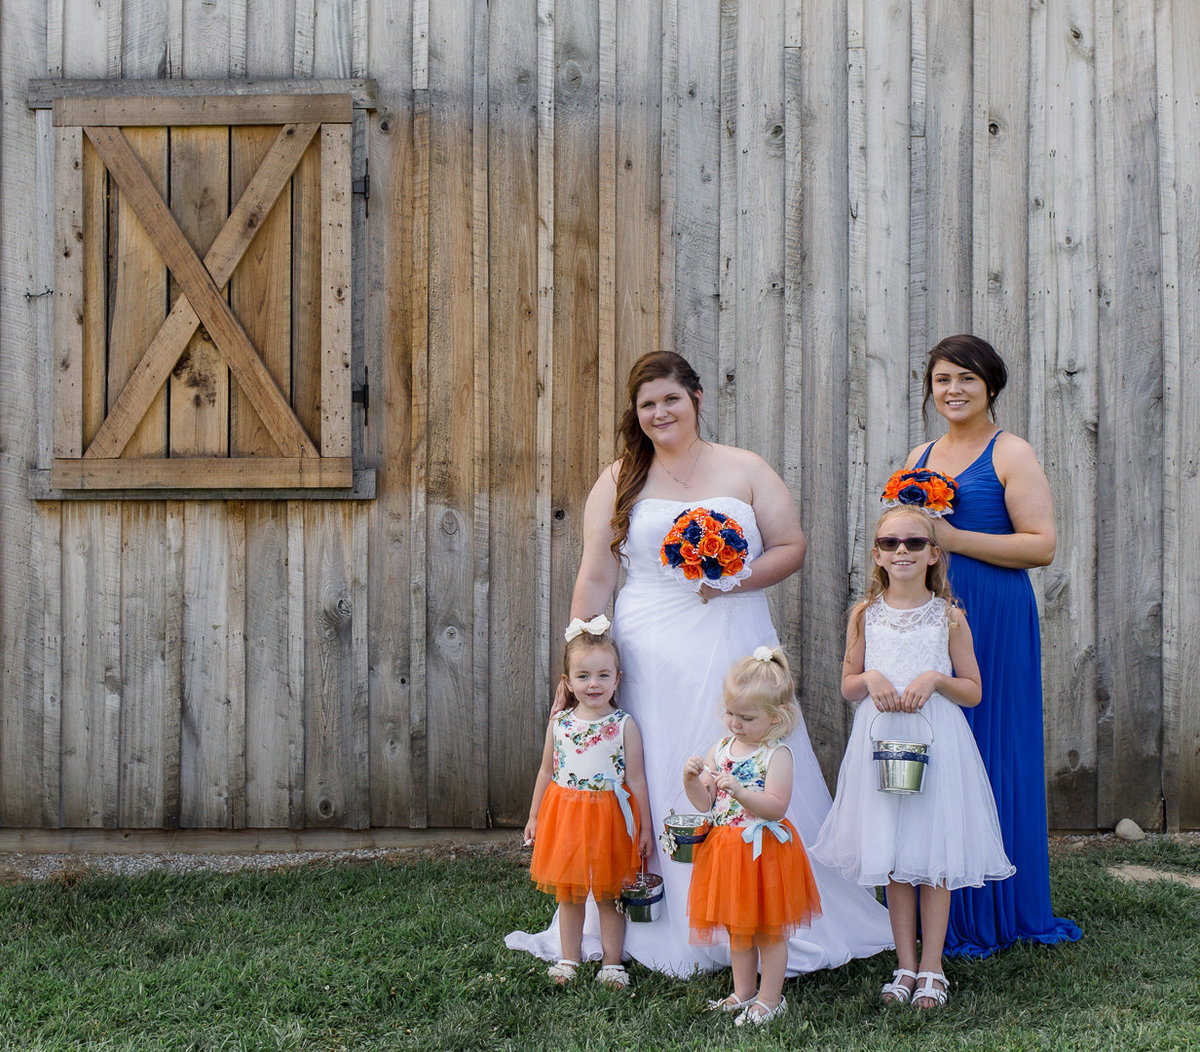 Rustic barn wedding0007